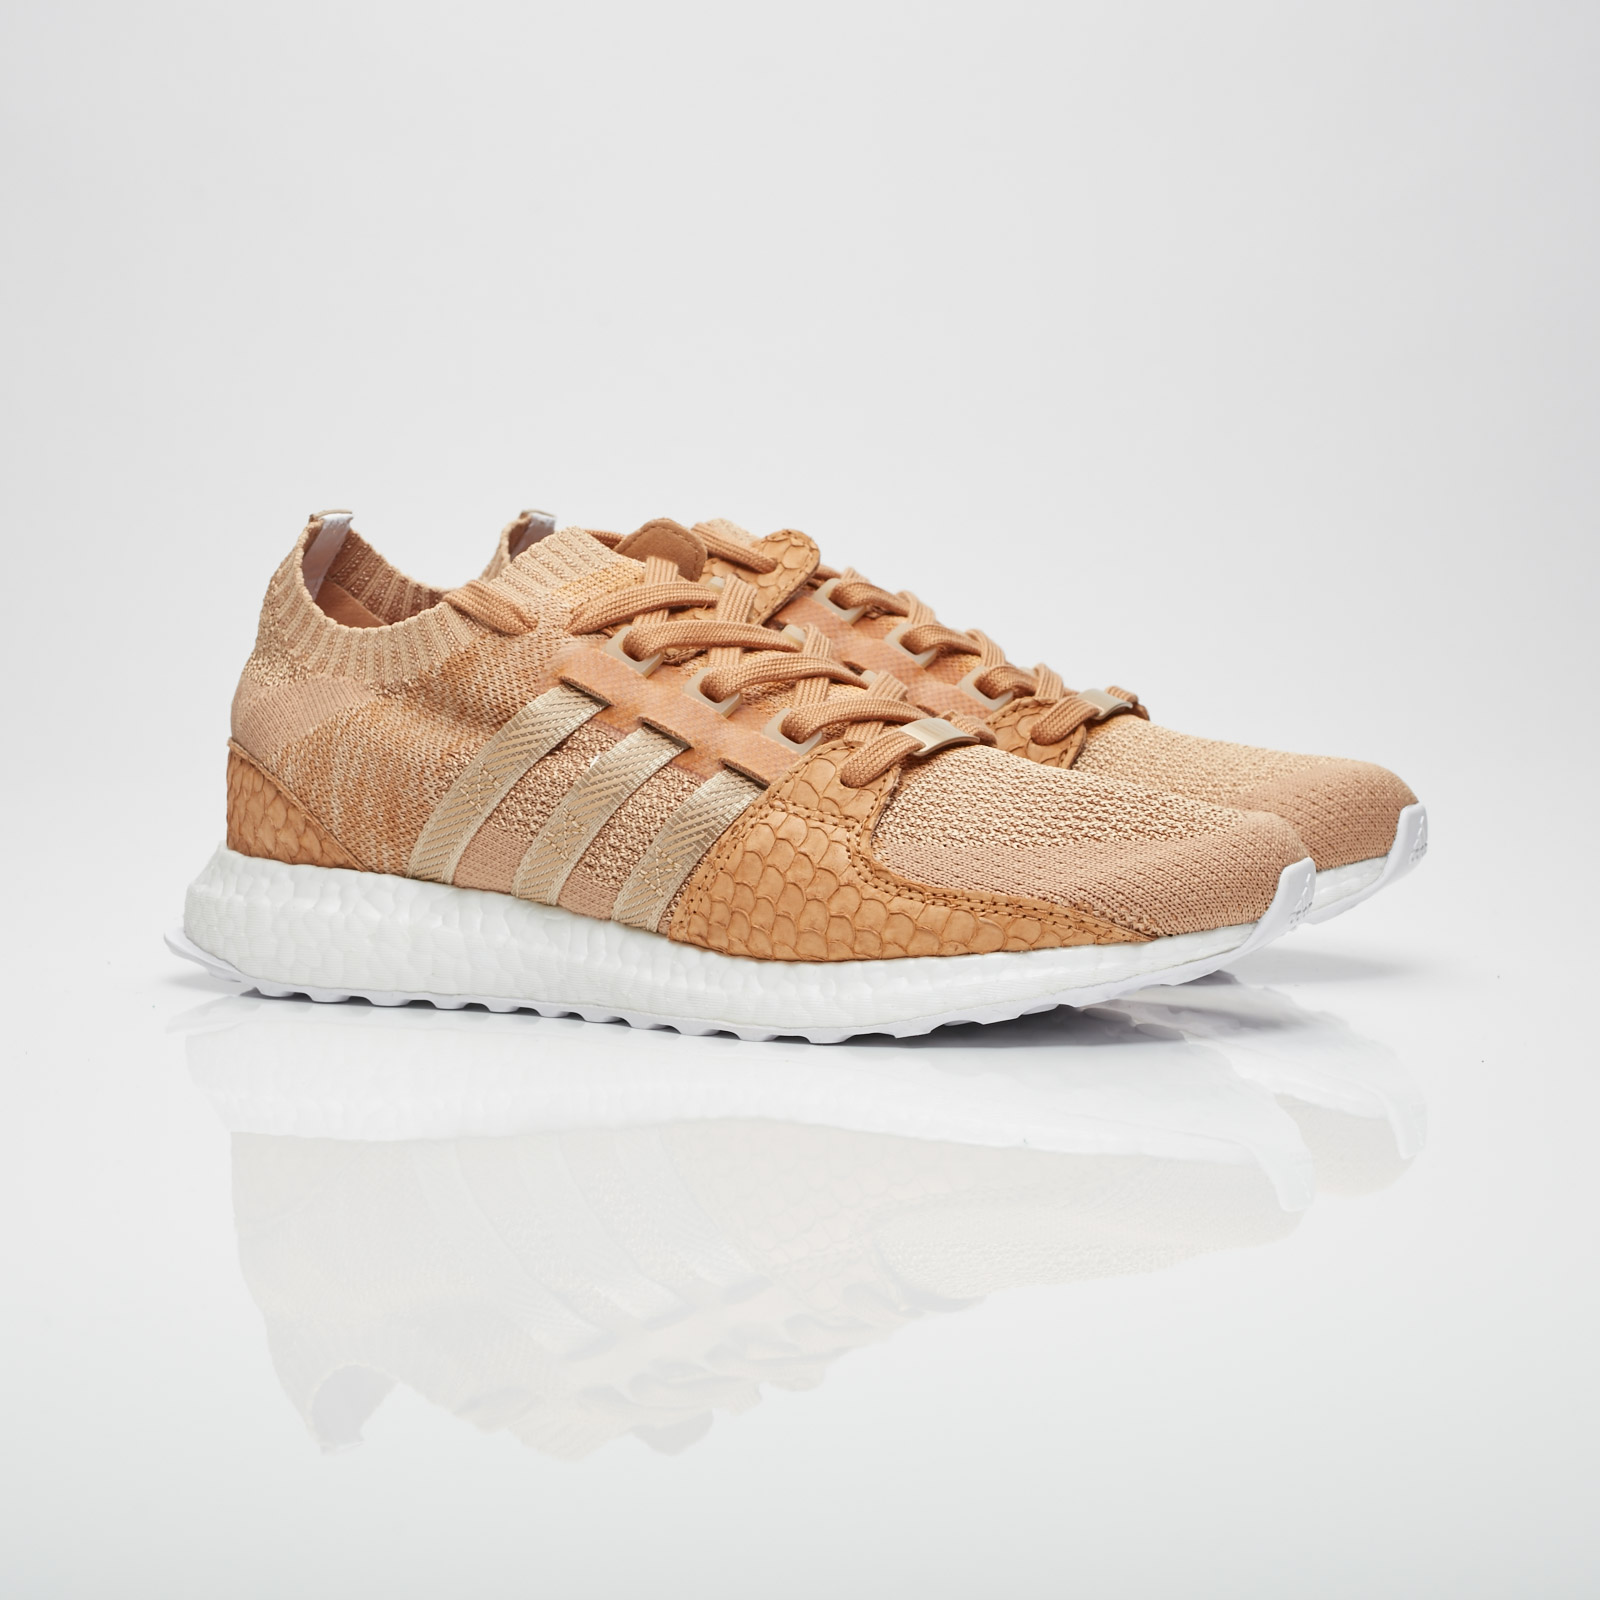 new style 1d6e5 25fb9 adidas EQT Support Ultra PK x Pusha T - Db0181 ...